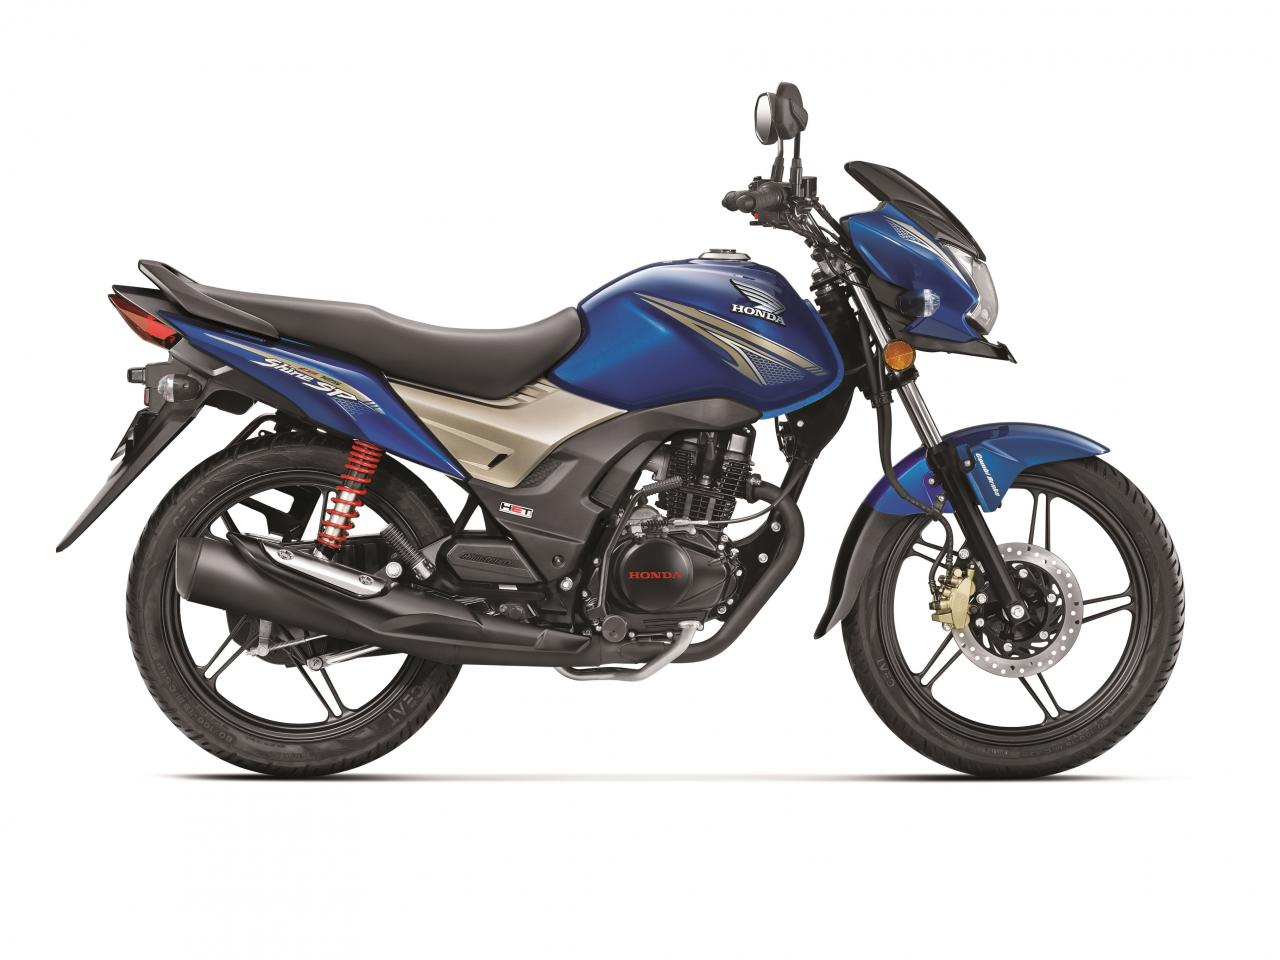 Honda Cb Shine Sp 125cc Motorcycle Launched At Rs 59 990